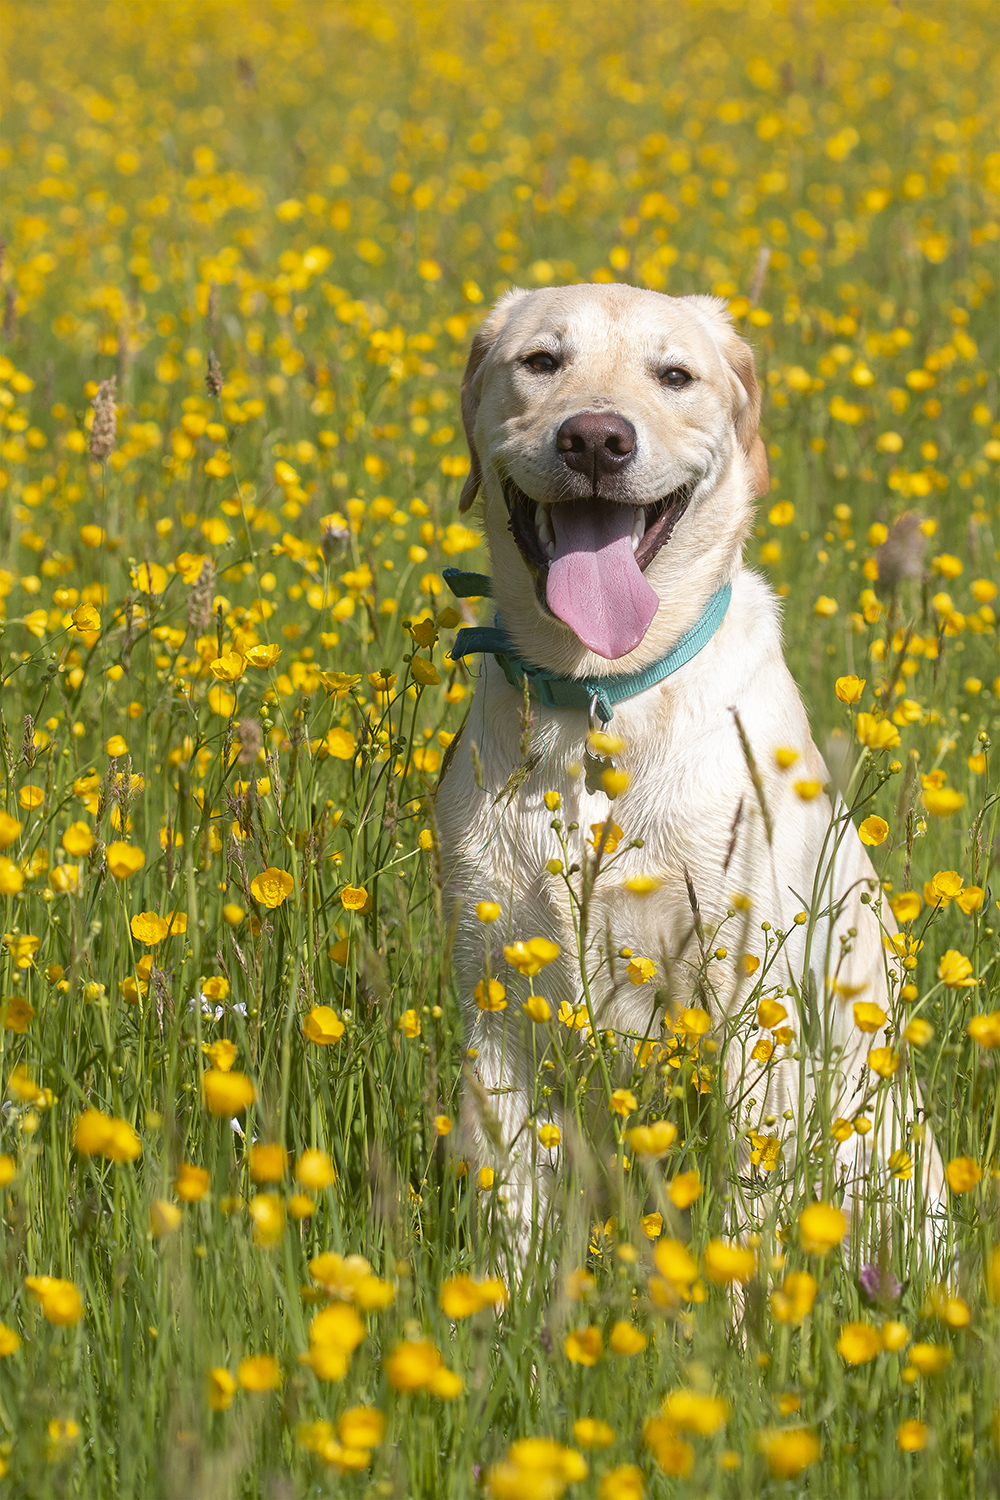 Colin looking his best in the buttercups